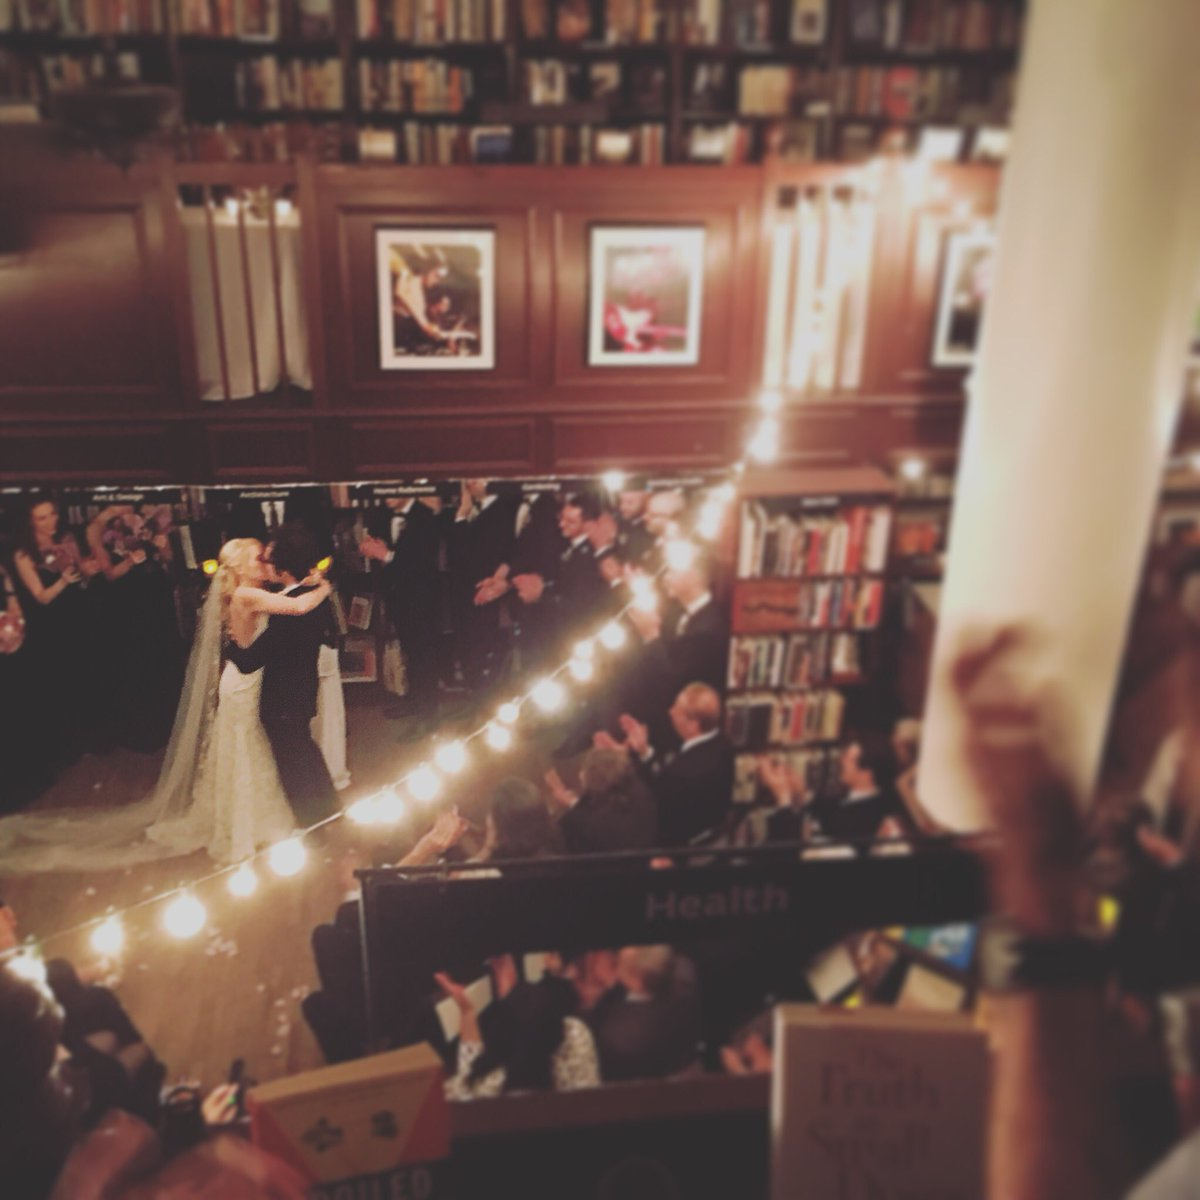 Friday I did the best thing I've ever done. I married my best friend. I love you Lina Axel https://t.co/eodwP7084A